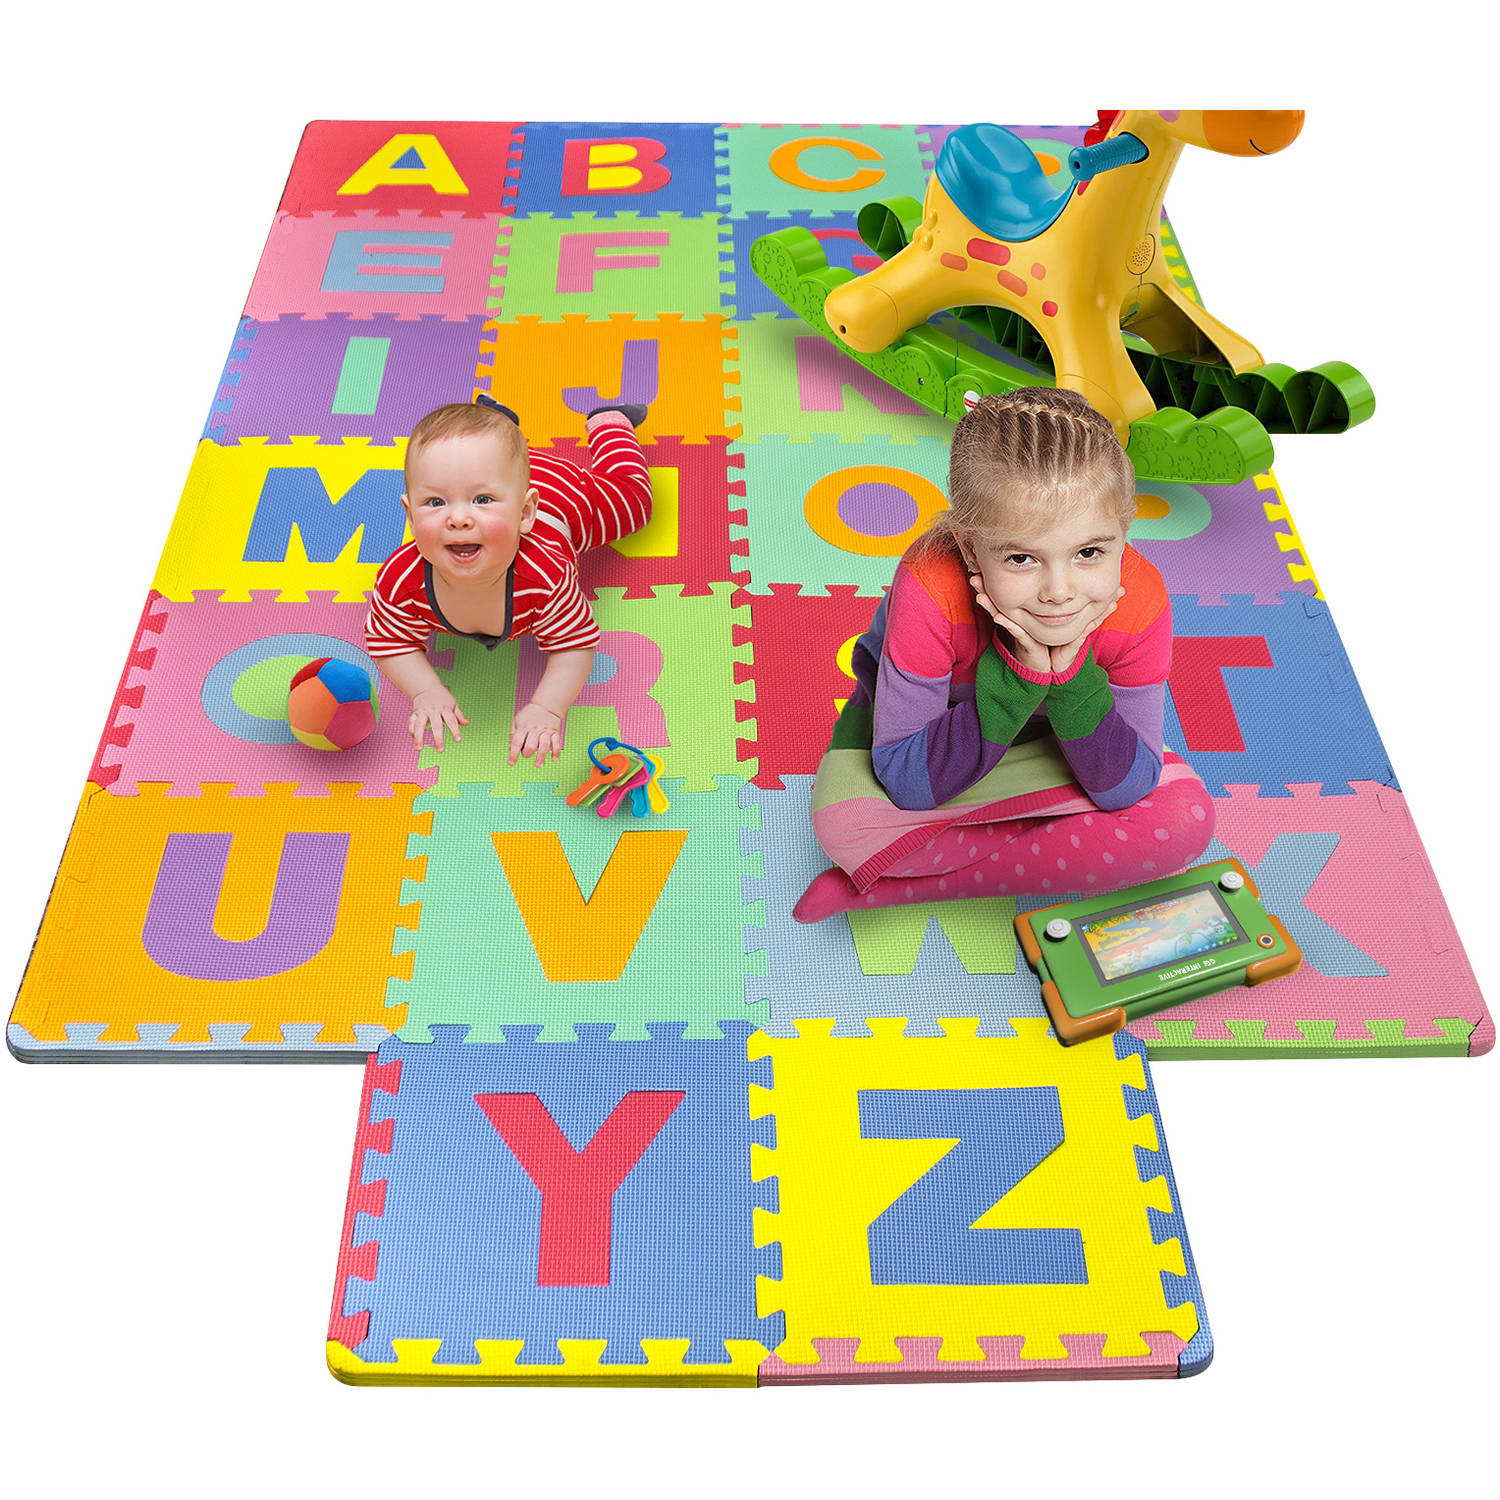 mats exercise foam tile amazon floor com playmat play multi toys kids safety solid divo games for color poco eva dp mat